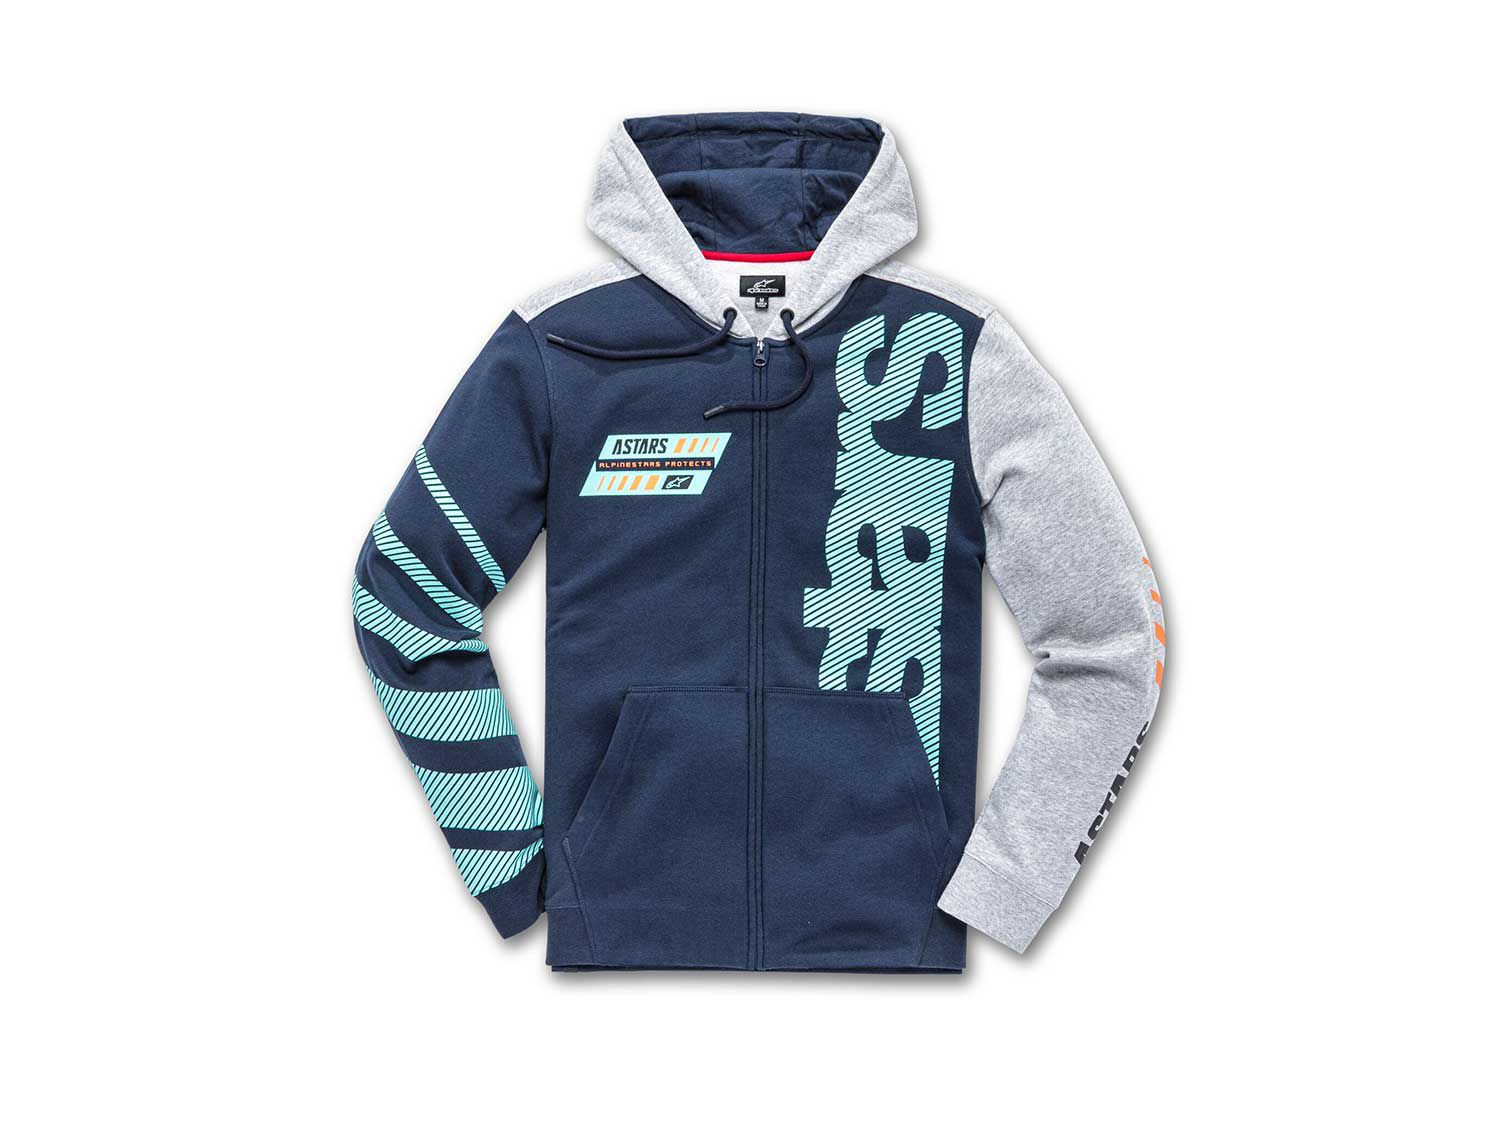 """The <a  href=""""https://www.amazon.com/Alpinestars-Mens-Hoody-Large-Black/dp/B07VGJGZKN/ref=as_li_ss_tl?ie=UTF8&linkCode=sl1&tag=mcy01-20&linkId=250304c8d13a656cf43a4635a00f0a35&language=en_US"""">Fan Club Hoodie</a> is made from an 80 percent cotton and 20 percent polyester blend fabric, featuring a zip front, ribbed cuffs, and an engineered chest graphic to complement the prints utilized on each sleeve."""